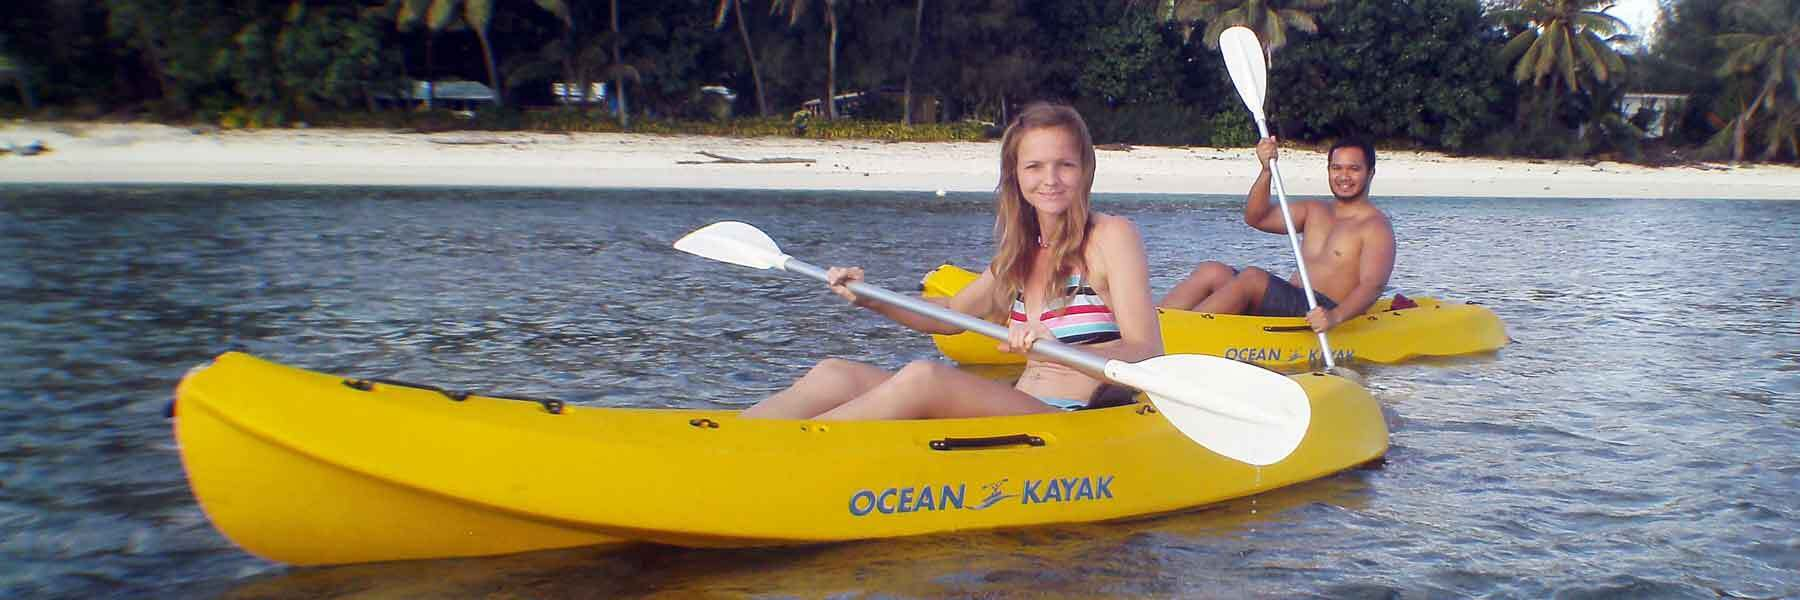 Kayaks for hire in Rarotonga